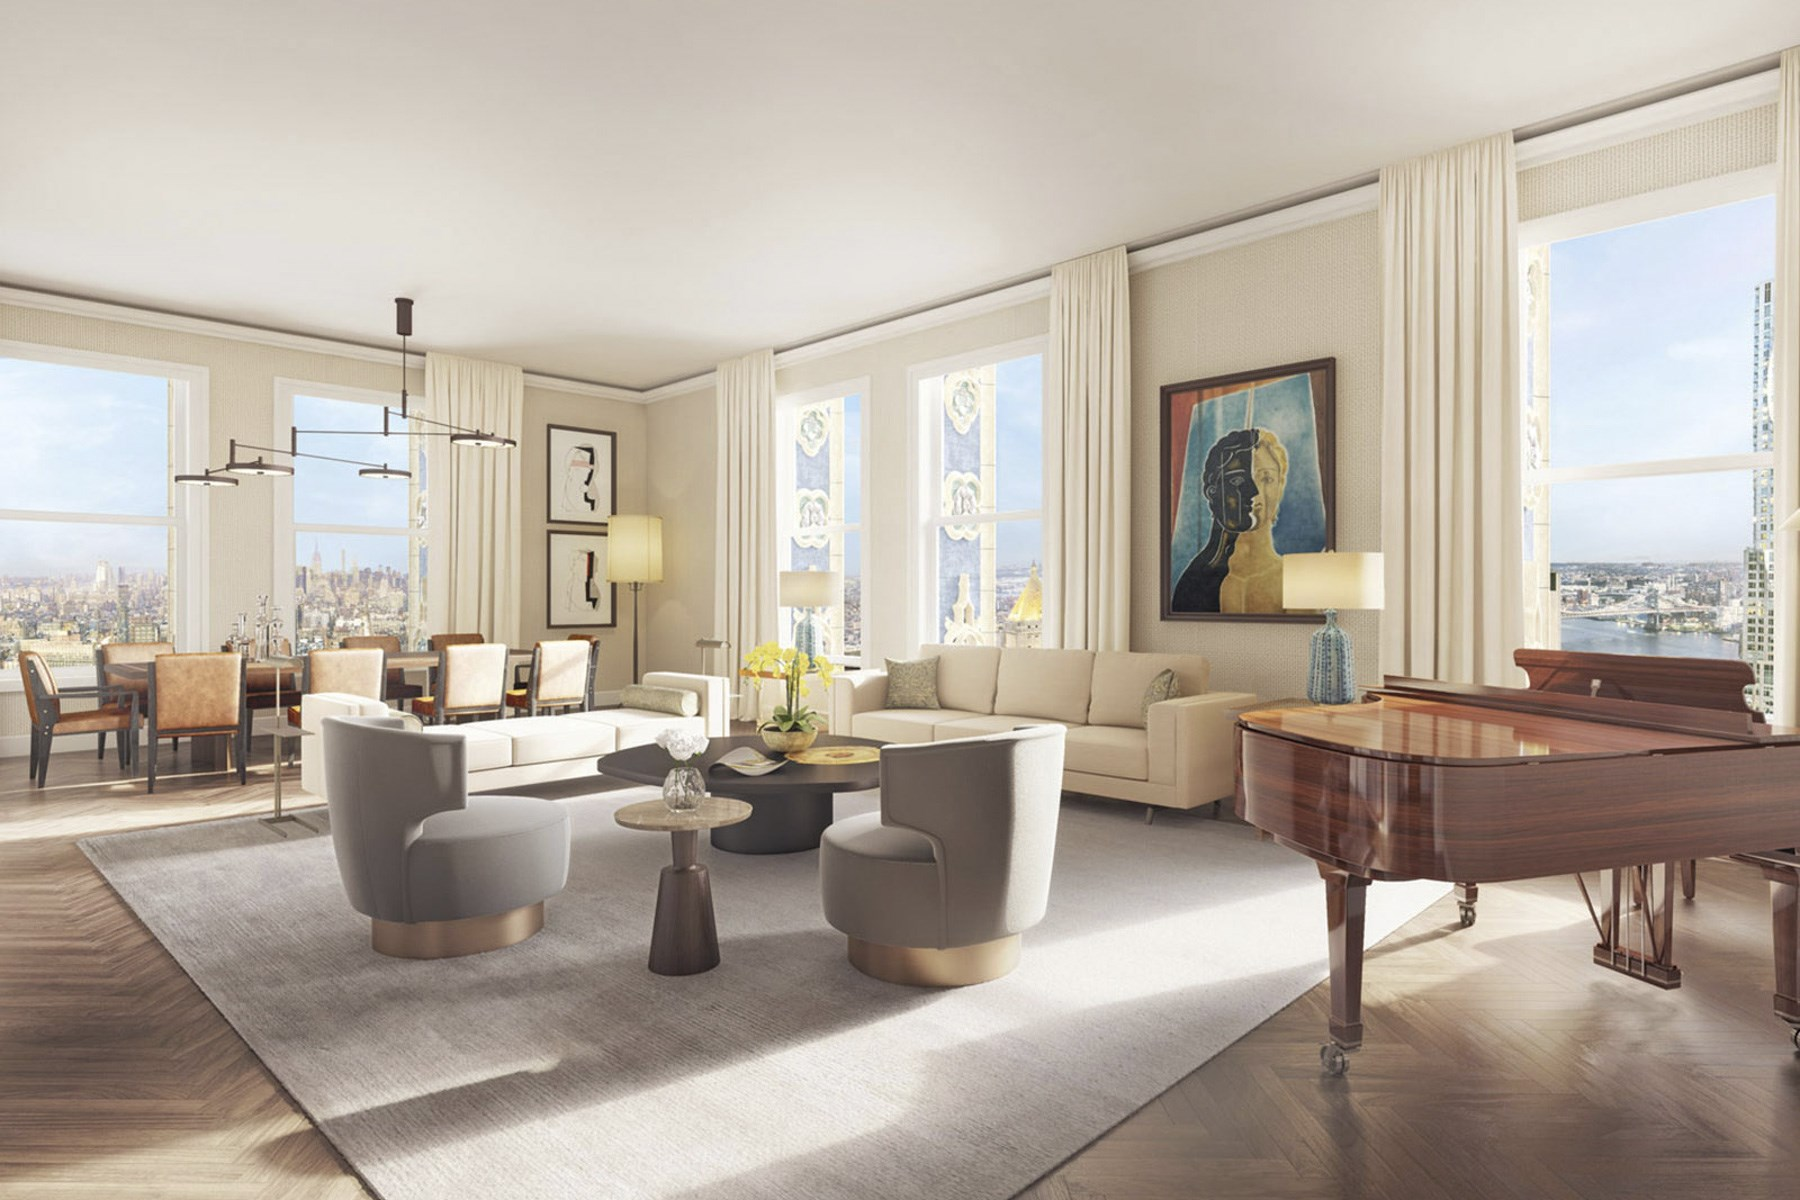 Appartement en copropriété pour l Vente à The Woolworth Tower Residences - 43A 2 Park Place Apt 43A, Tribeca, New York, New York, 10007 États-Unis